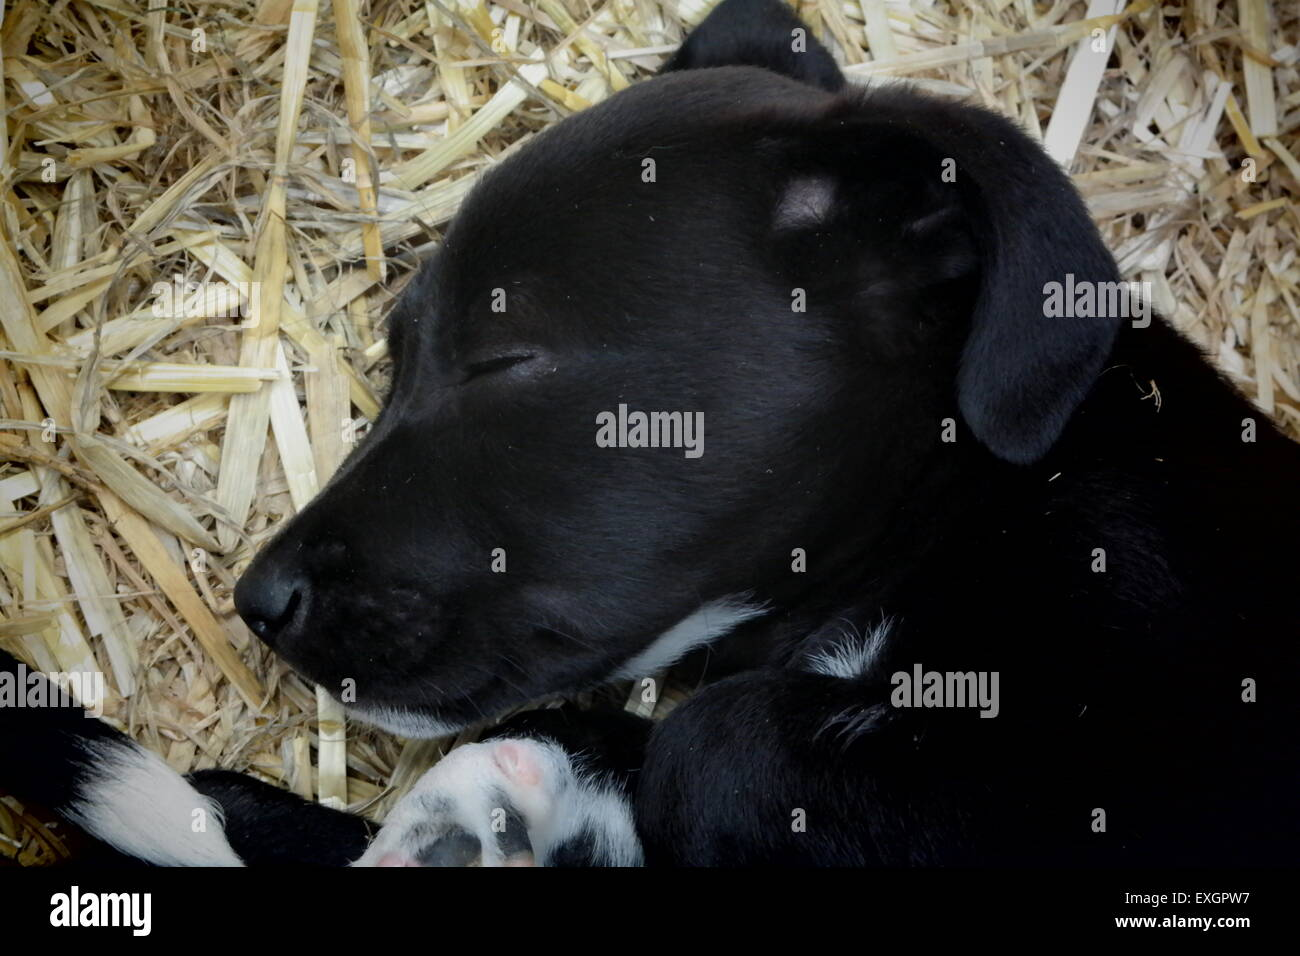 Puppy peacefully sleeping - Stock Image